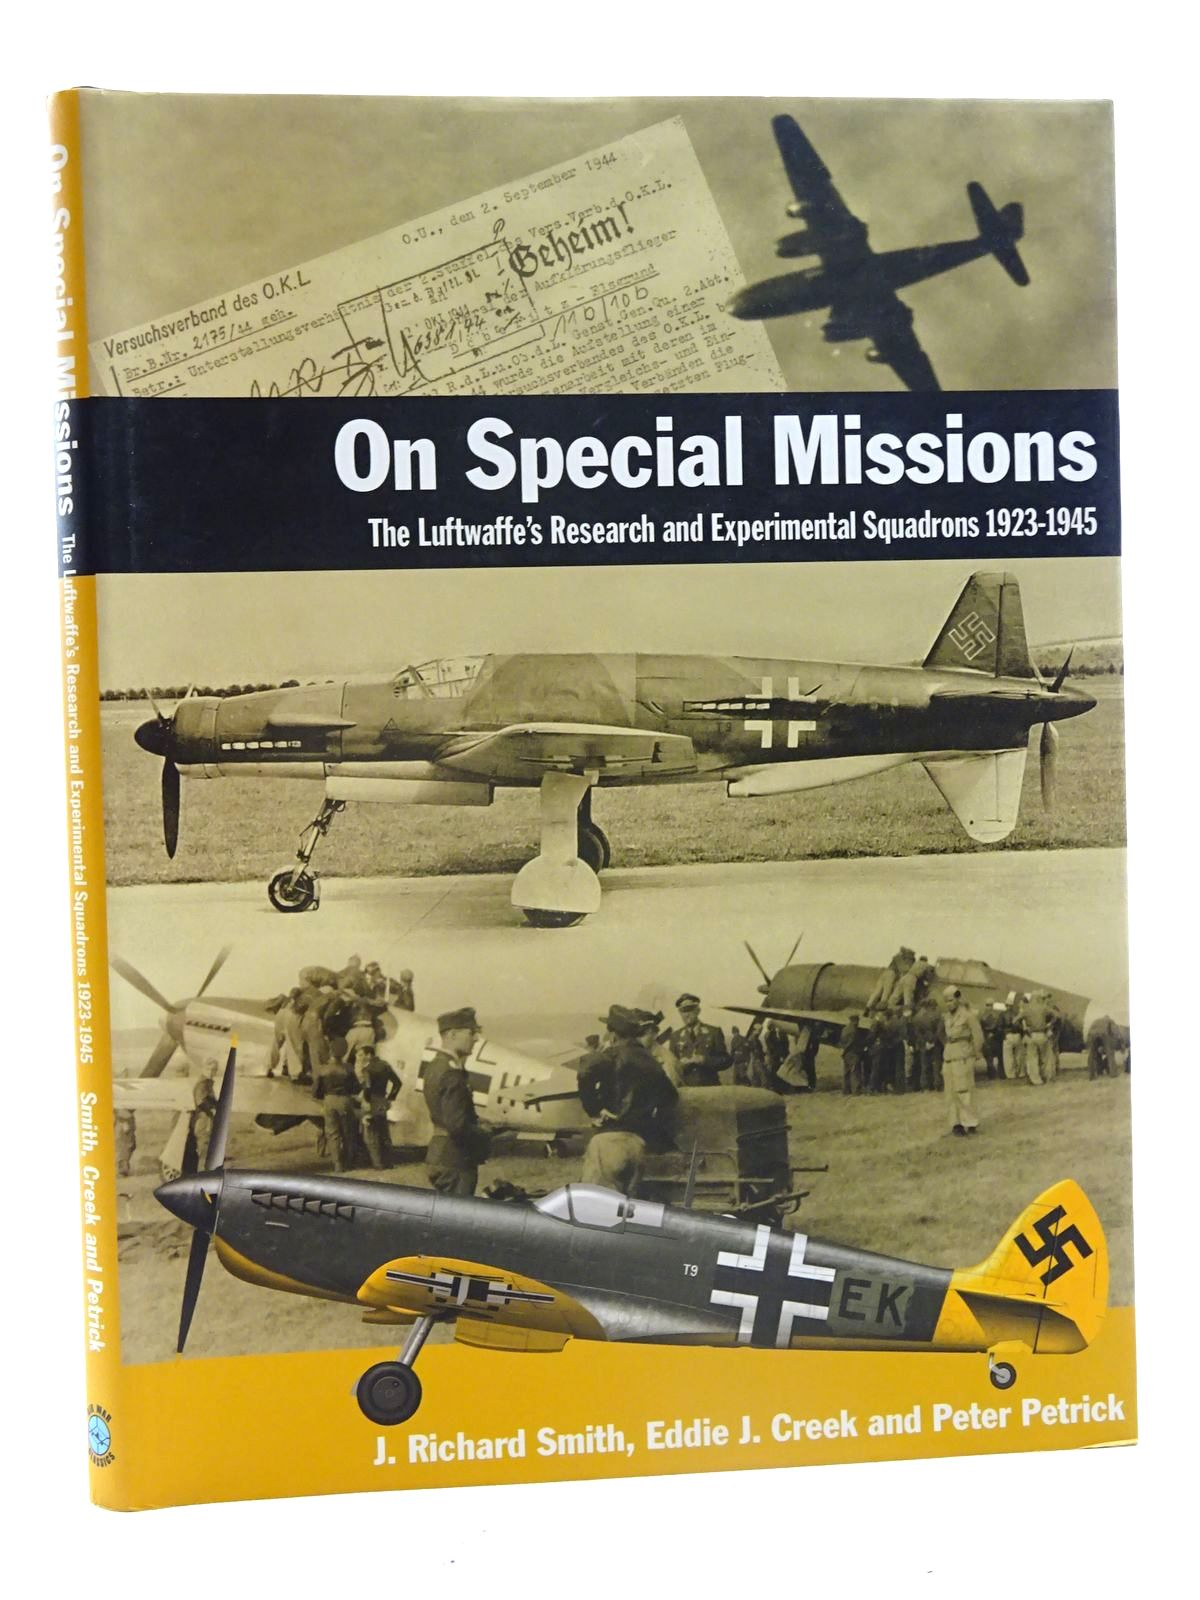 On Special Missions The Luftwaffe